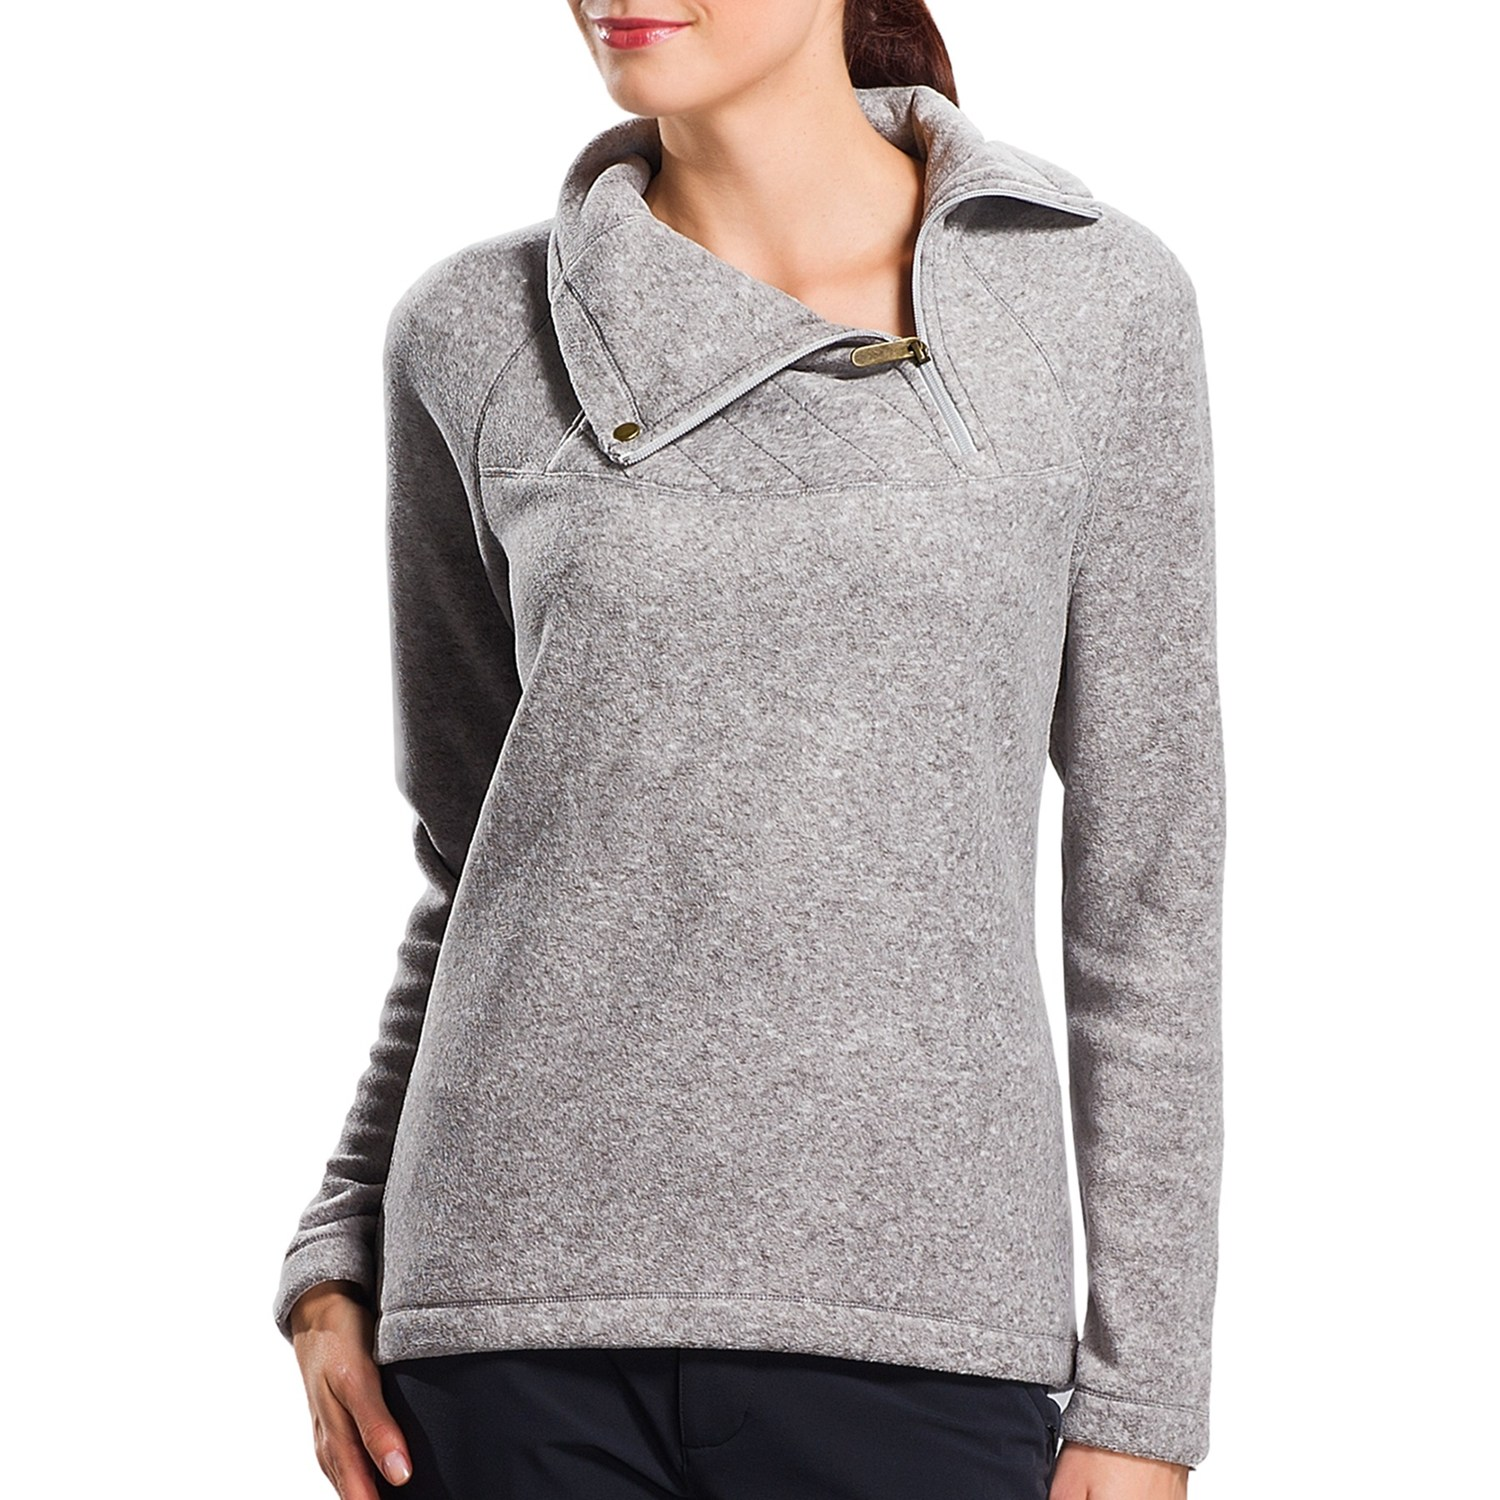 Warm Polar Fleece Pullover Shirt - UPF 50 , Zip Neck, Long Sleeve ...